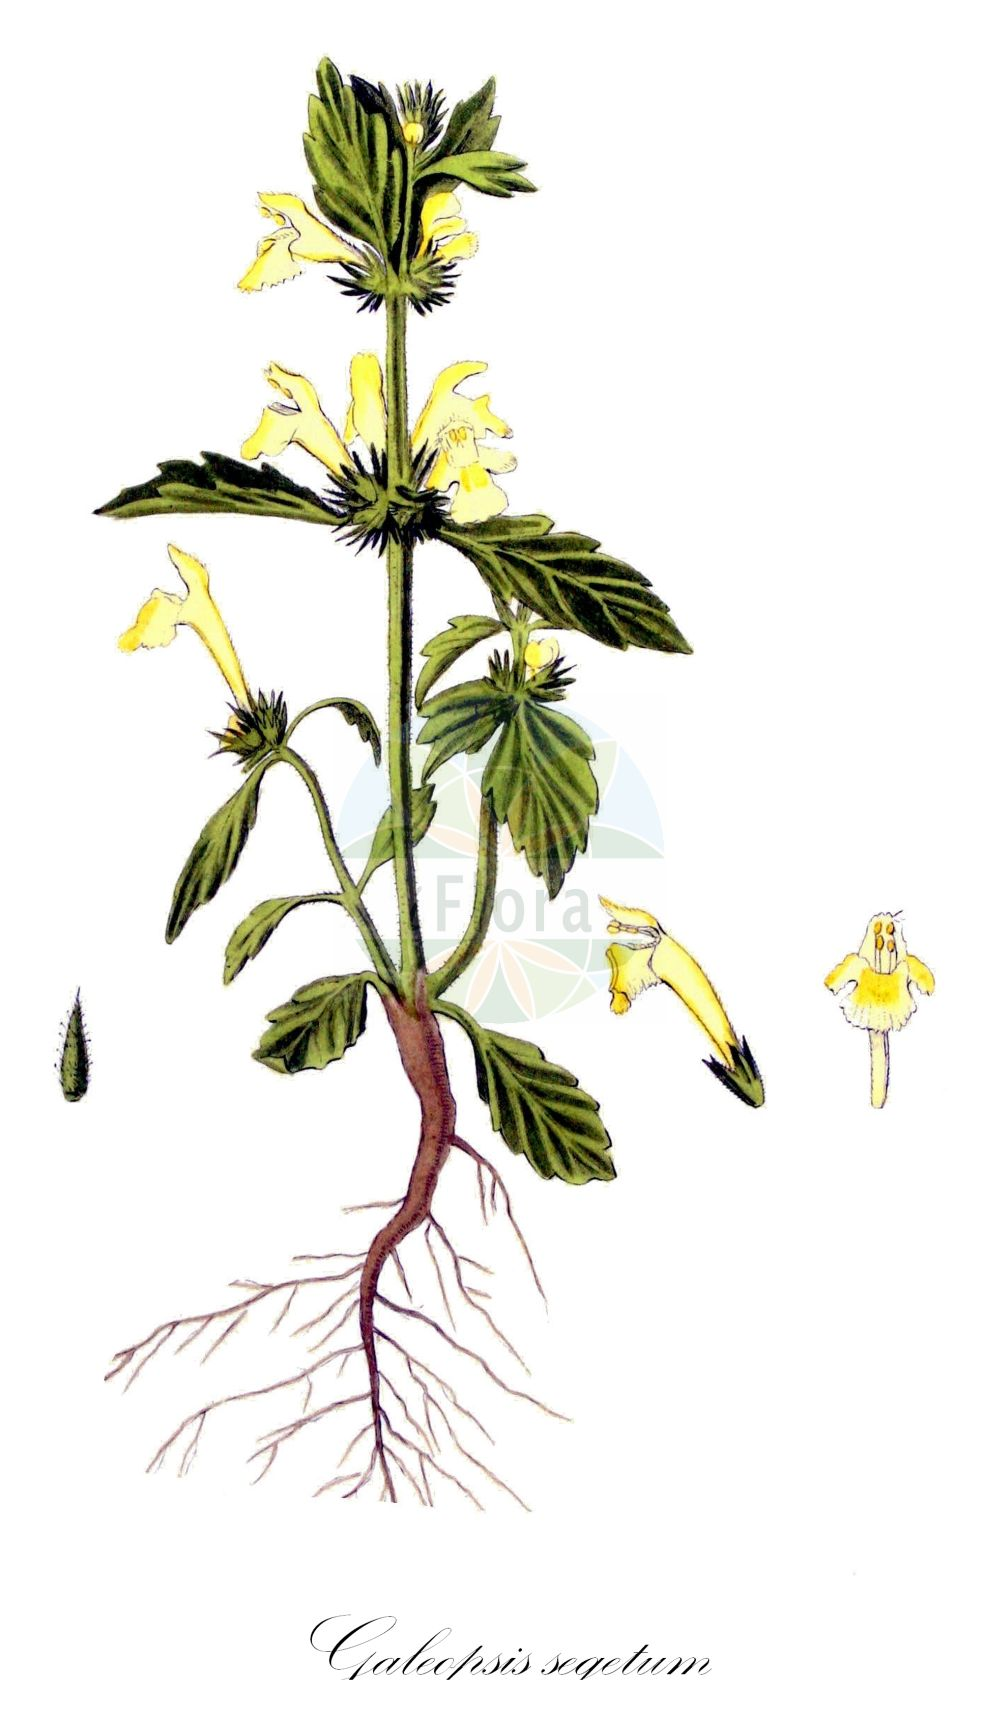 Historische Abbildung von Galeopsis segetum (Gelber Hohlzahn - Downy Hemp-nettle). Das Bild zeigt Blatt, Bluete, Frucht und Same. ---- Historical Drawing of Galeopsis segetum (Gelber Hohlzahn - Downy Hemp-nettle).The image is showing leaf, flower, fruit and seed.(Galeopsis segetum,Gelber Hohlzahn,Downy Hemp-nettle,Dalanum segetum,Galeopsis dubia,Galeopsis elegans,Galeopsis grandiflora,Galeopsis ochroleuca,Galeopsis villosa,Ladanella segetum,Ladanum dubium,Ladanum luteum,Ladanum ochroleucum,Tetrahit longiflorum,Saat-Hohlzahn,Yellow Hemp-nettle,Galeopsis,Hohlzahn,Hempnettle,Lamiaceae,Lippenbluetengewaechse;Lippenbluetler,Nettle family,Blatt,Bluete,Frucht,Same,leaf,flower,fruit,seed,Kops (1800-1934))